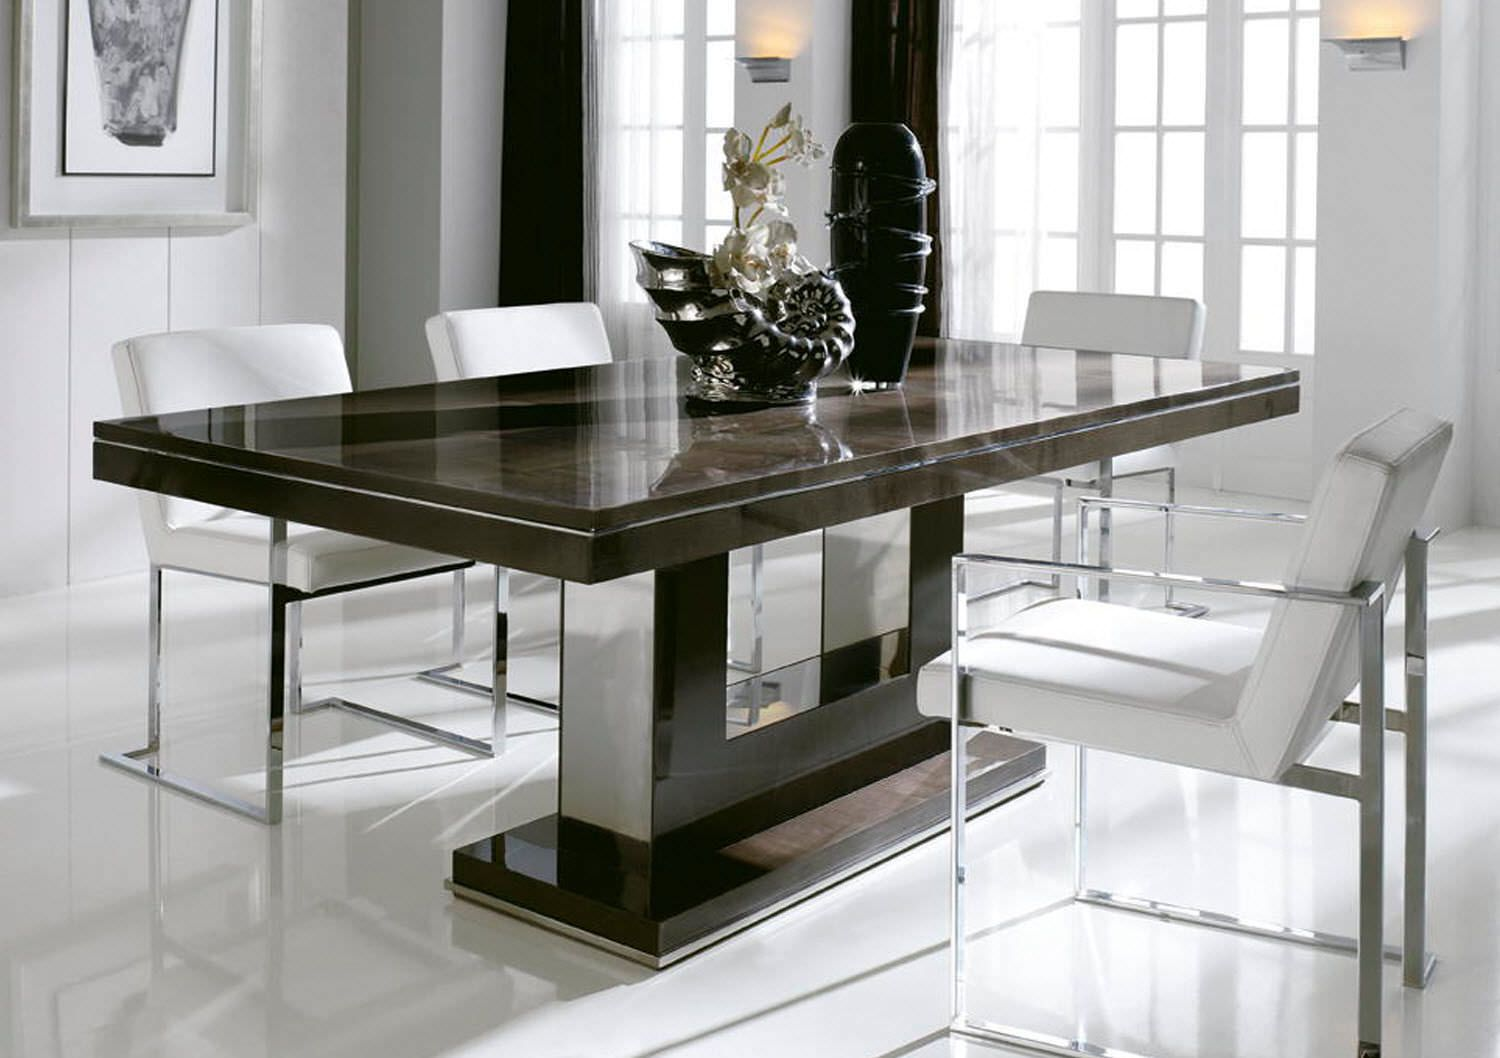 Nice Marble Top Dining Table Set Popular In Small Home Decoration Ideas With  Marble Top Dining Table: Top Leather Chairs Modern Dining Set